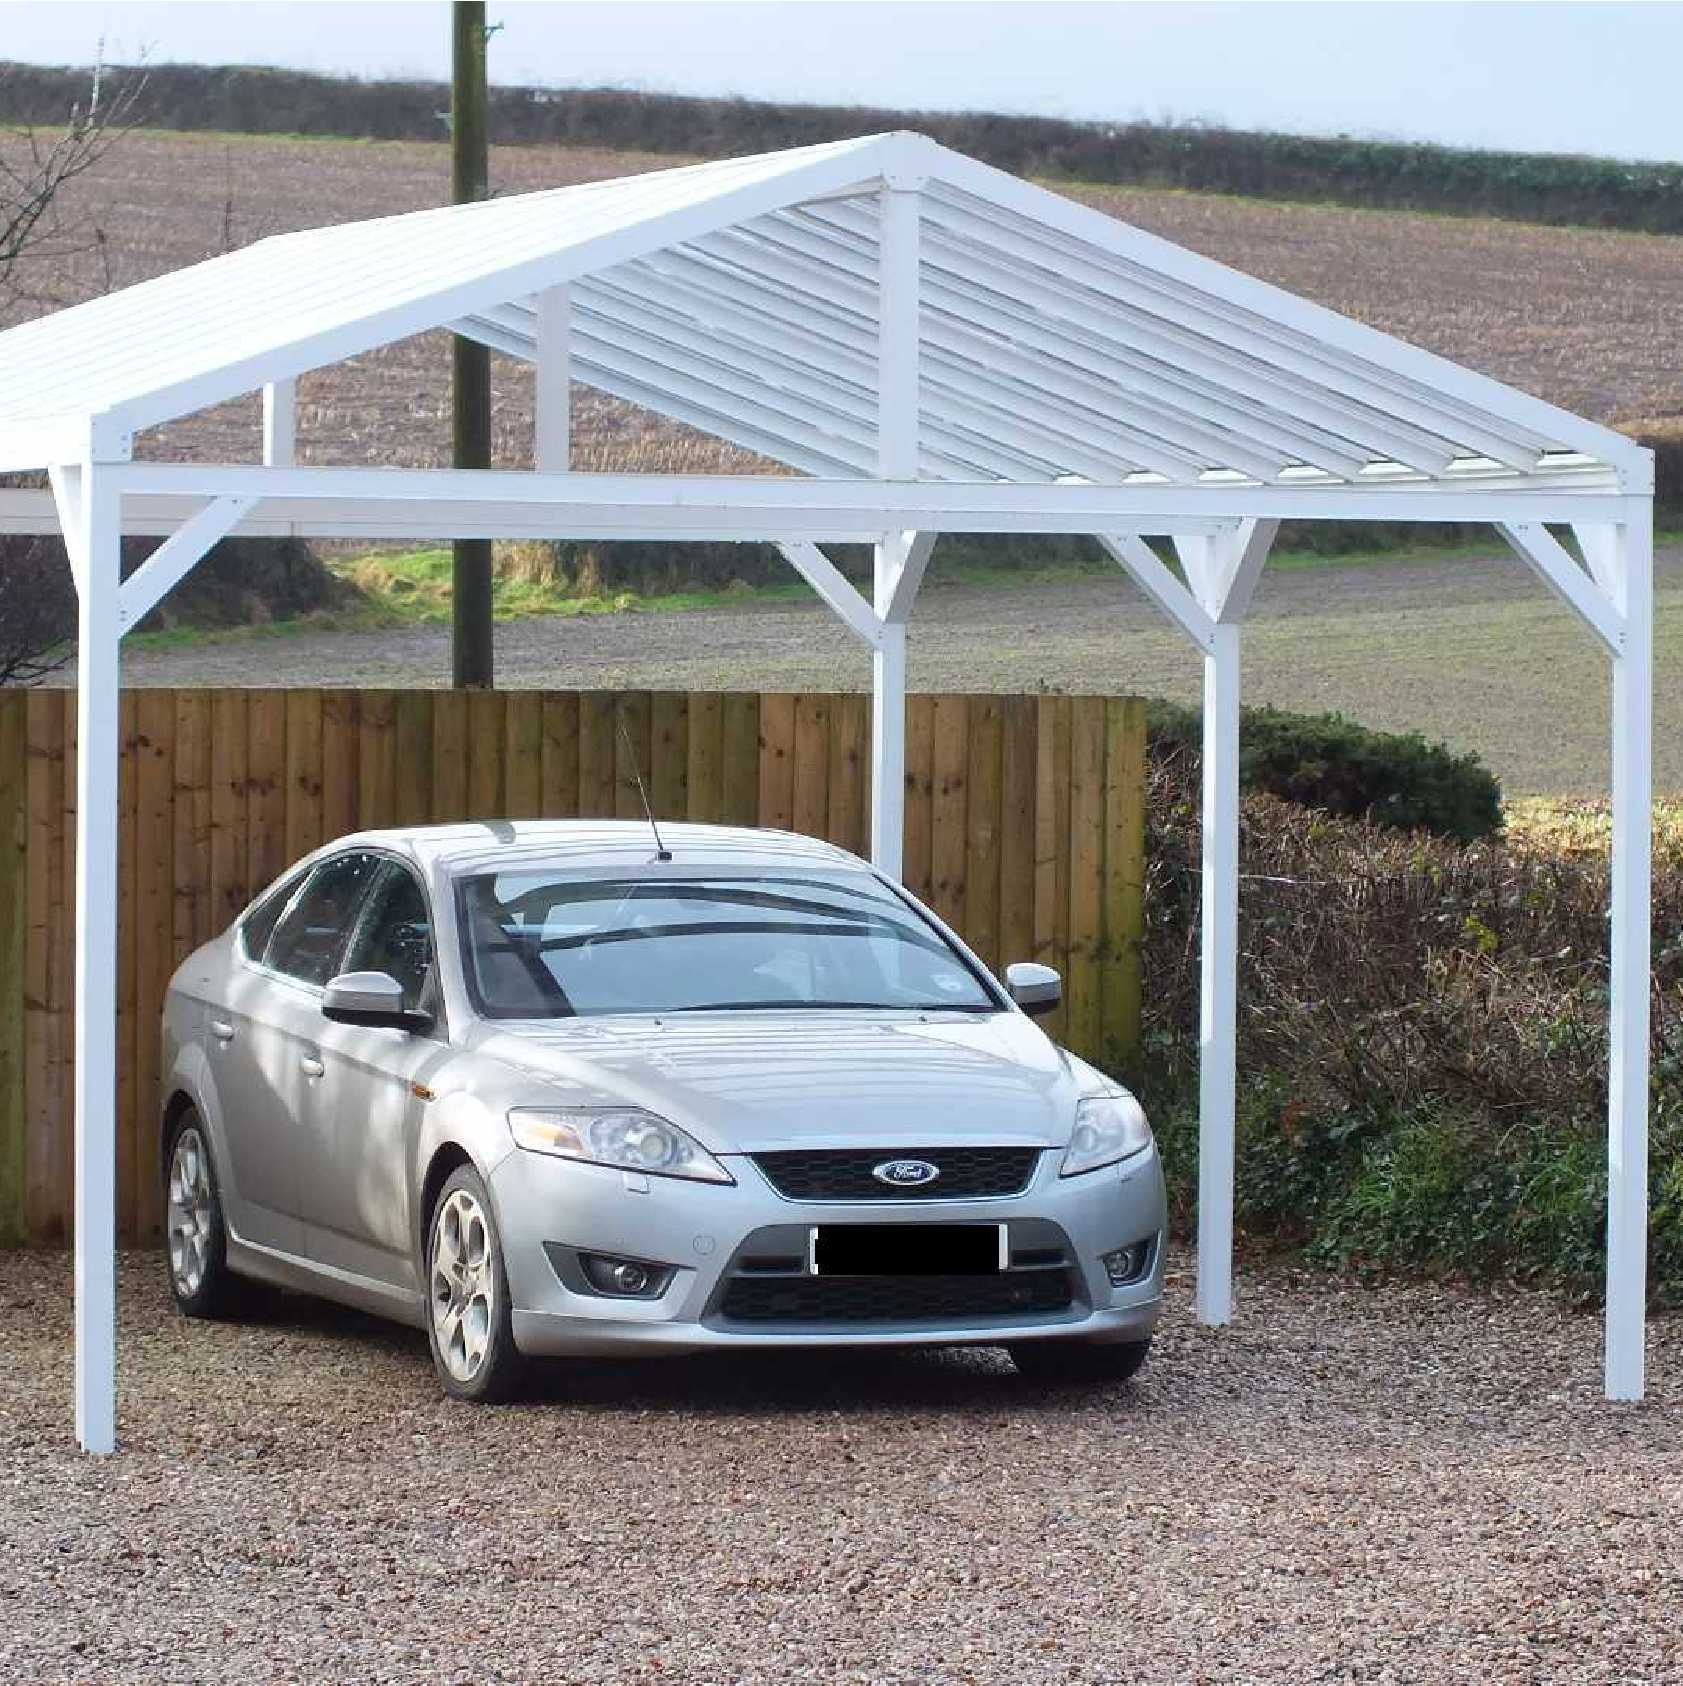 Buy Omega Smart Free-Standing, Gable-Roof (type 1) Canopy with 16mm Polycarbonate Glazing - 4.2m (W) x 3.5m (P), (6) Supporting Posts online today